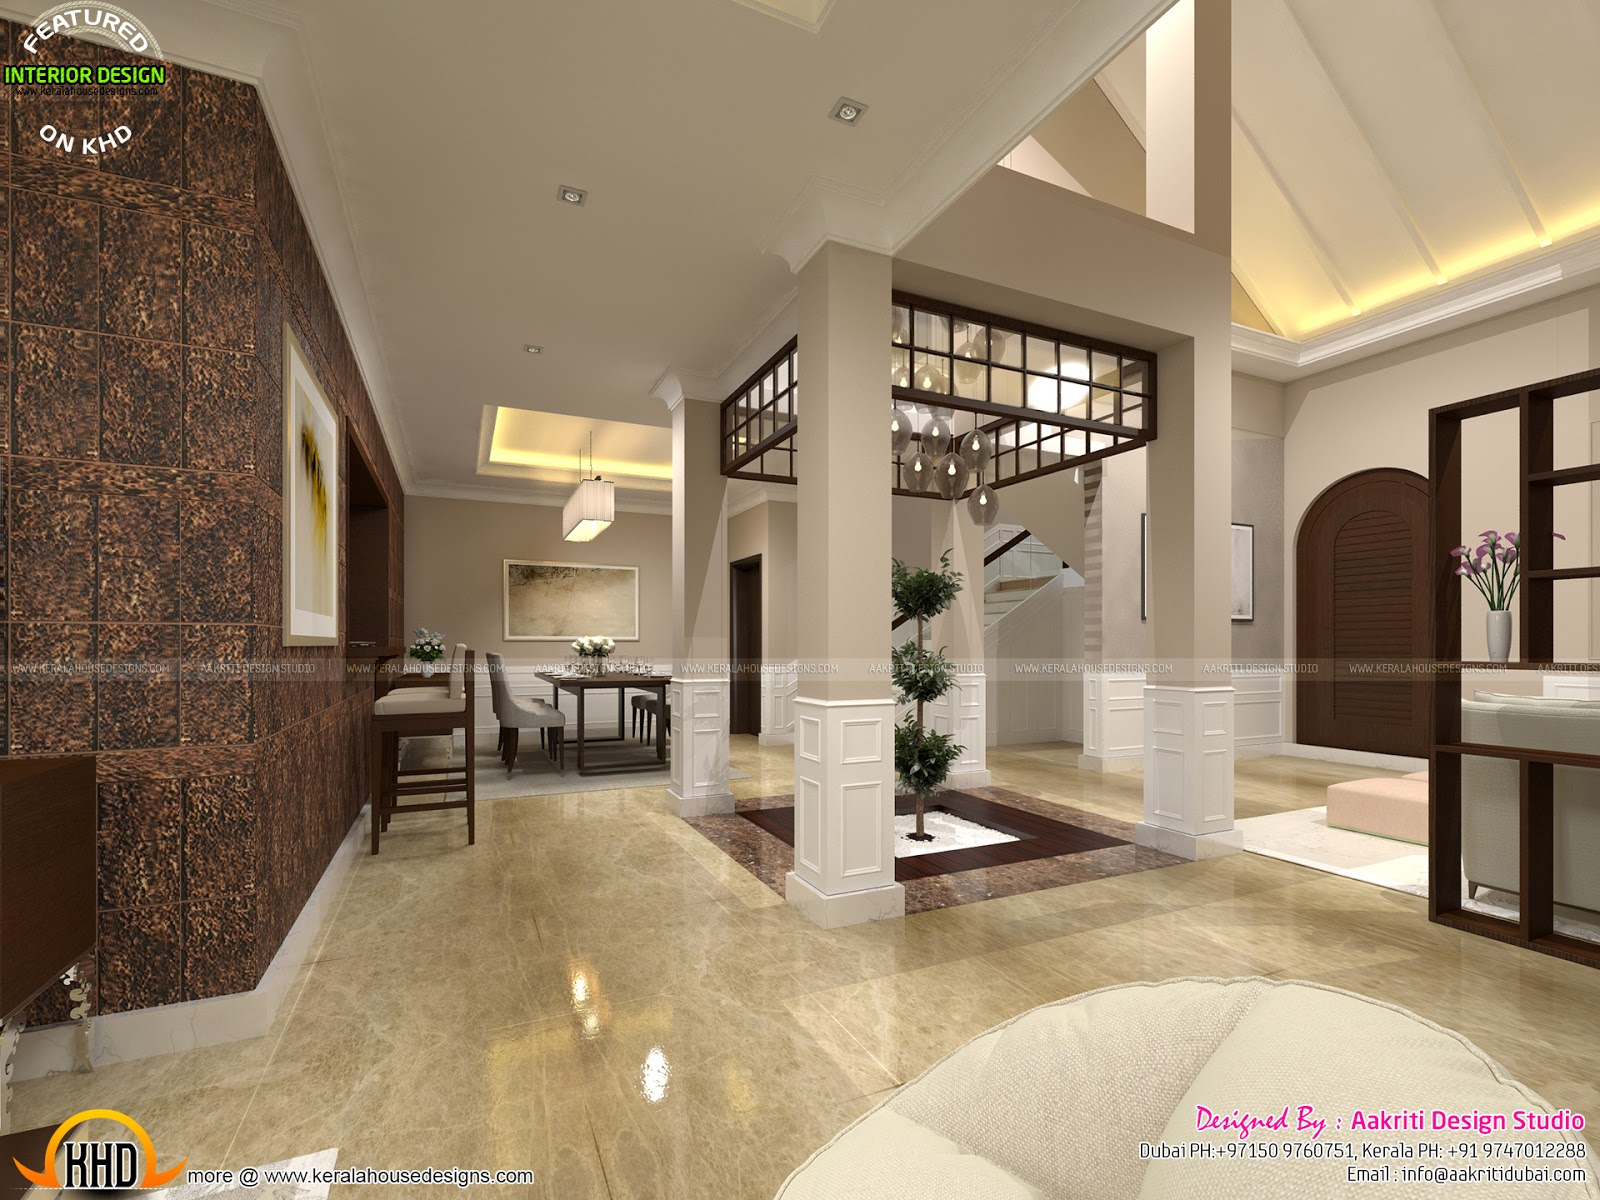 Living Room Interior Design Photo Gallery India Leather Couch Ideas Classic Style For Room, Stair Area ...